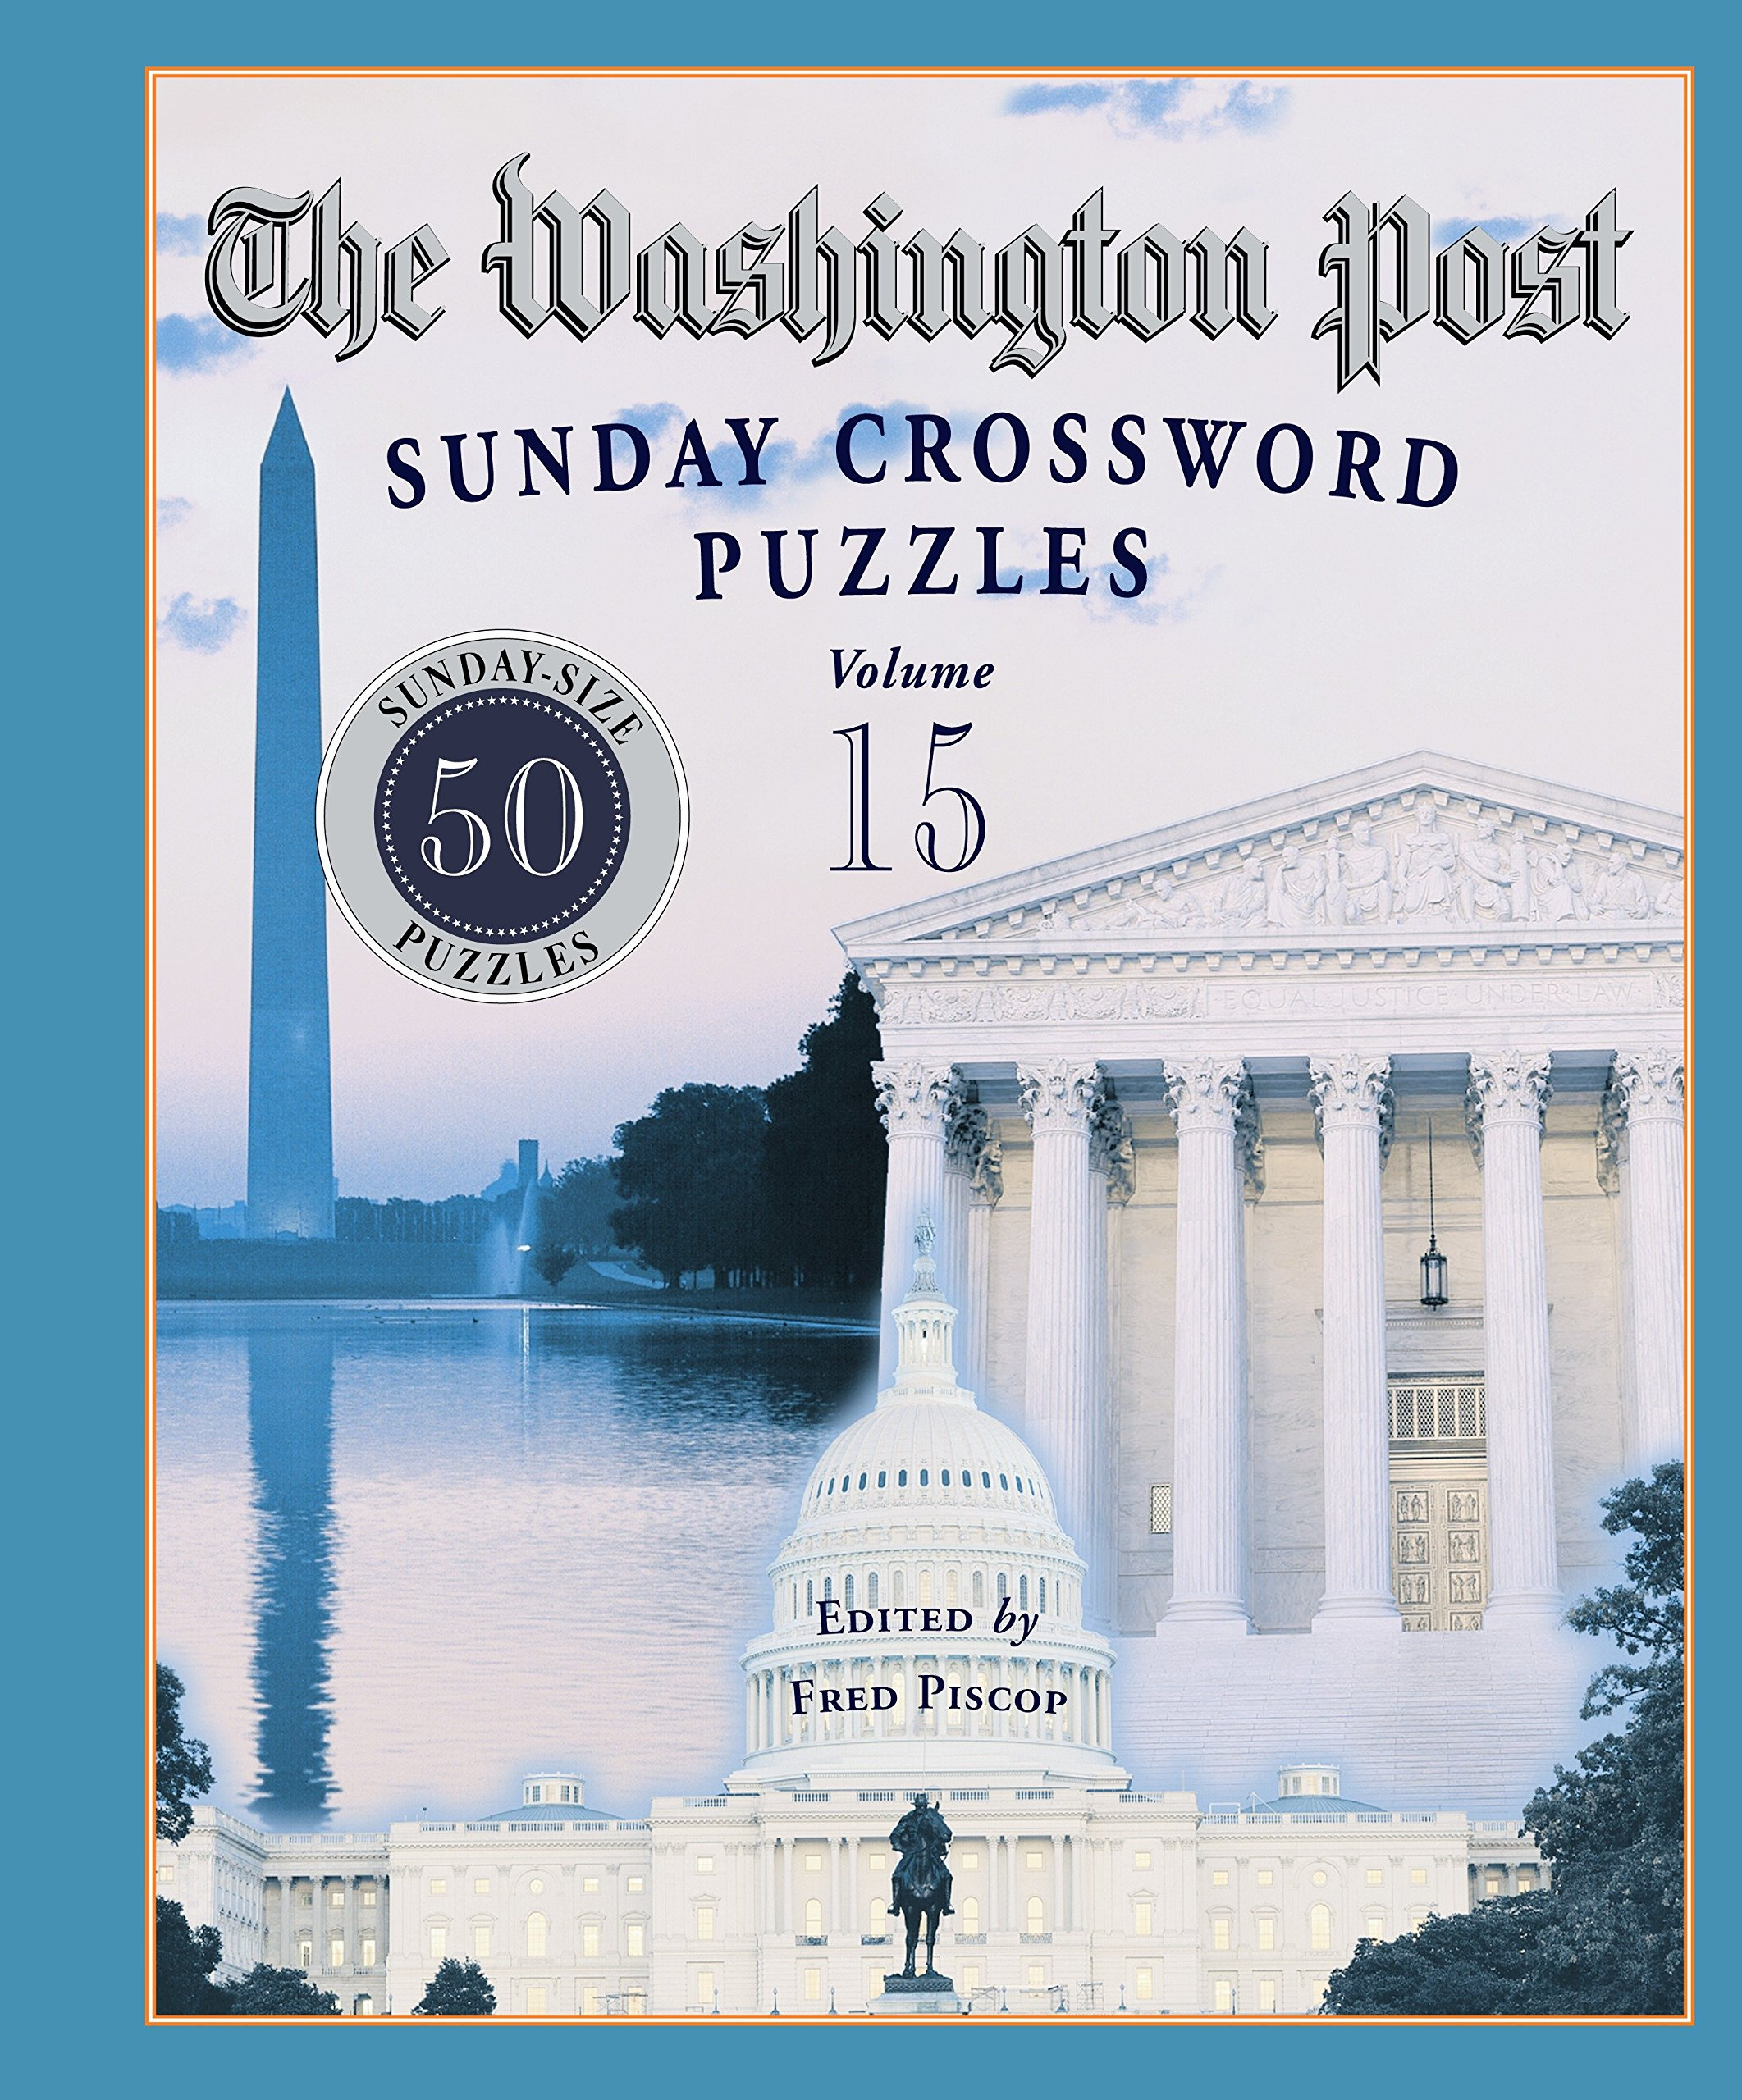 graphic regarding Washington Post Crossword Printable called The Washington Article Sunday Crossword Puzzles, Amount 15